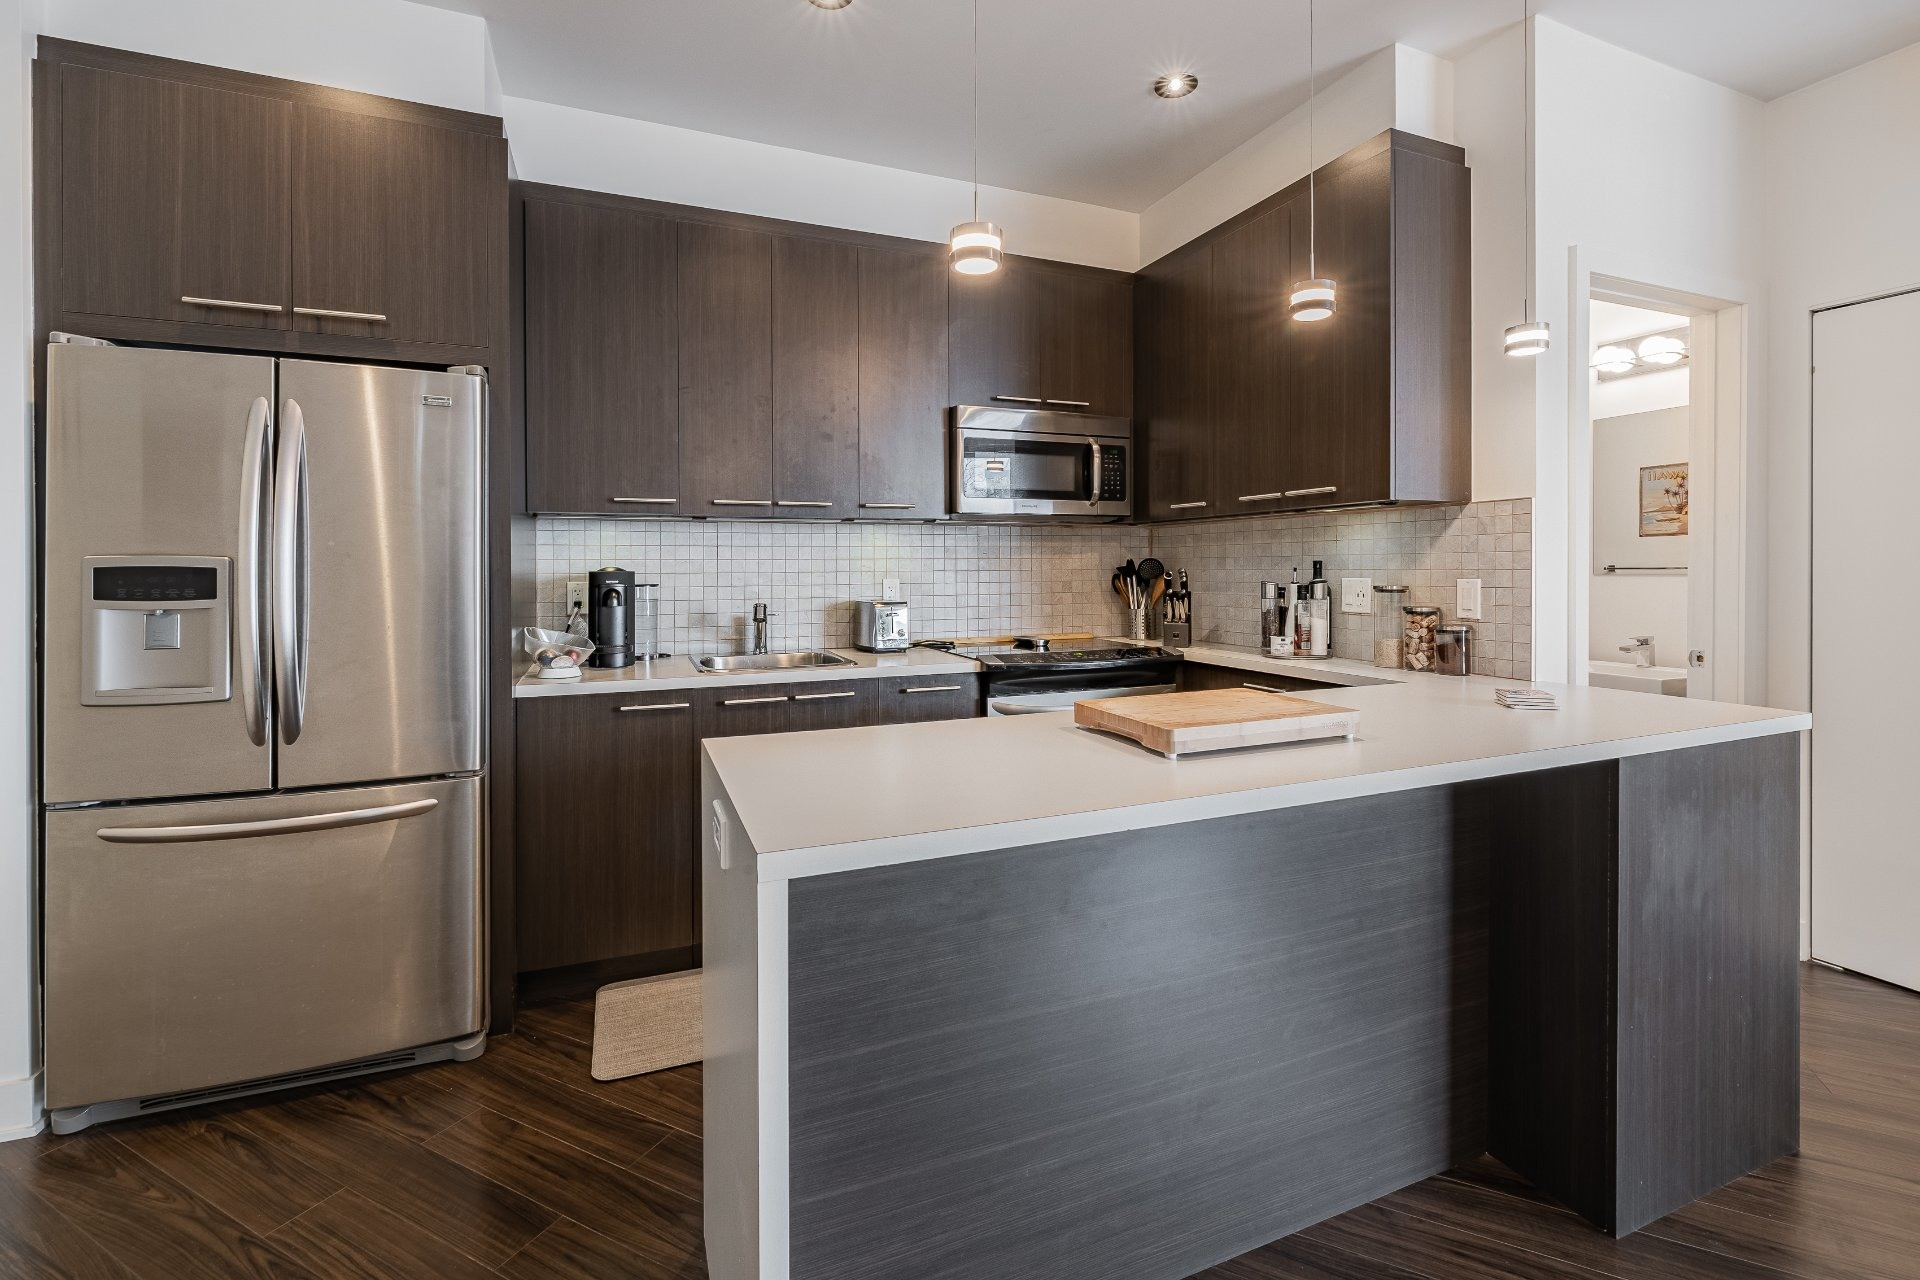 image 5 - Apartment For sale Mercier/Hochelaga-Maisonneuve Montréal  - 5 rooms